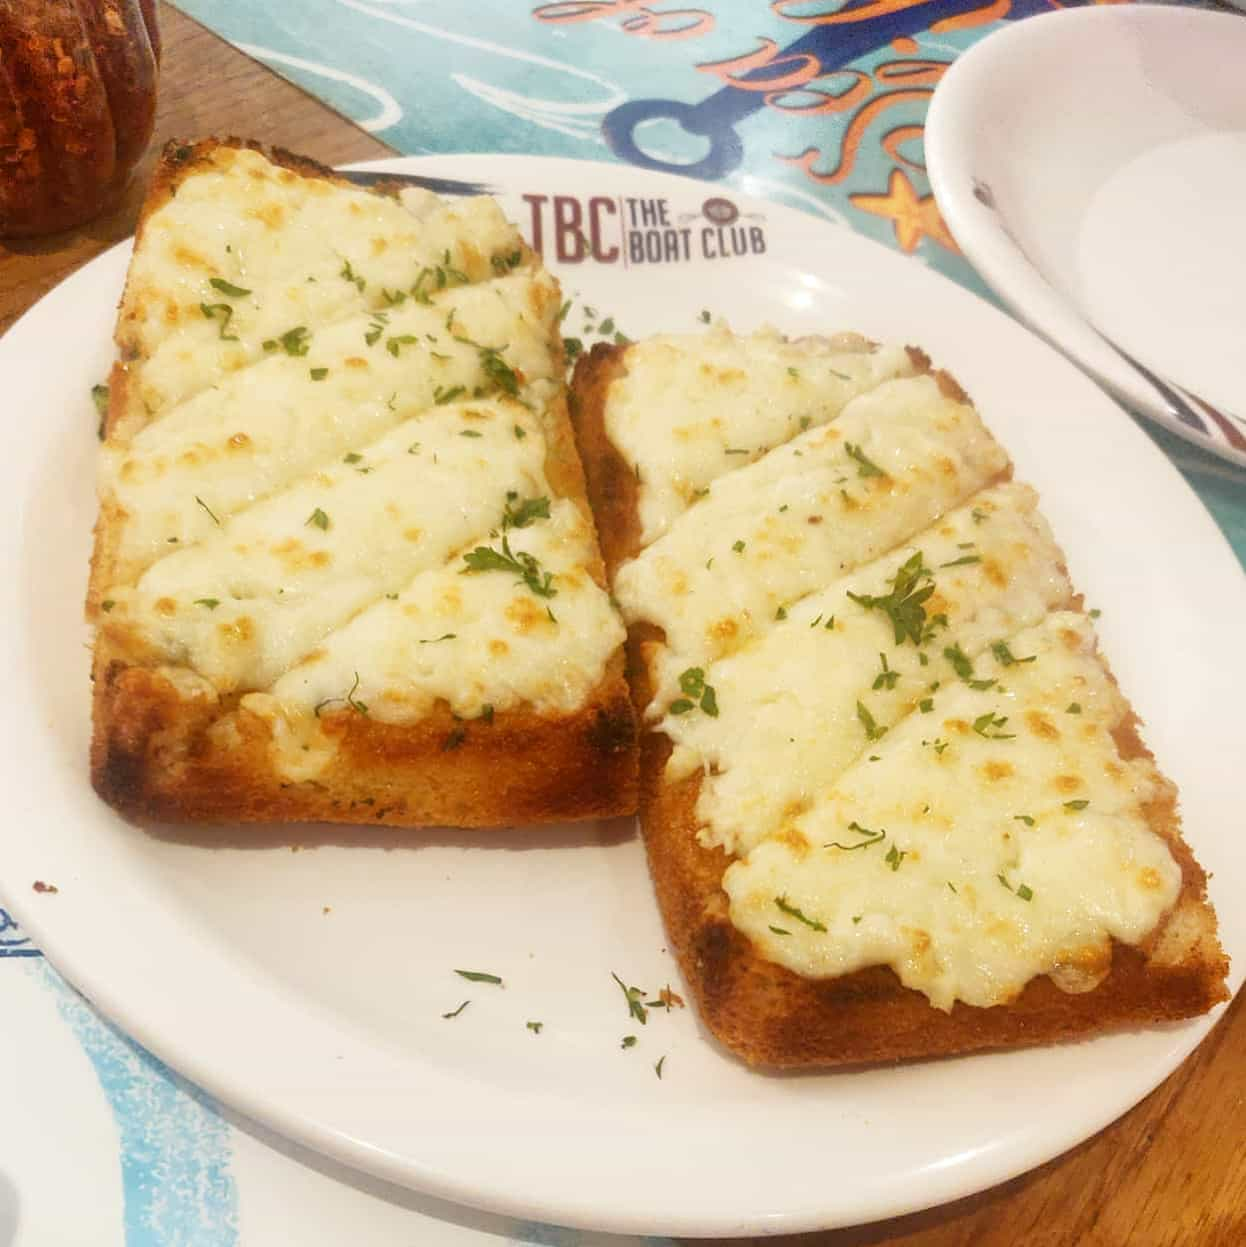 Garlic Focaccia Bread with Cheese at our food blog